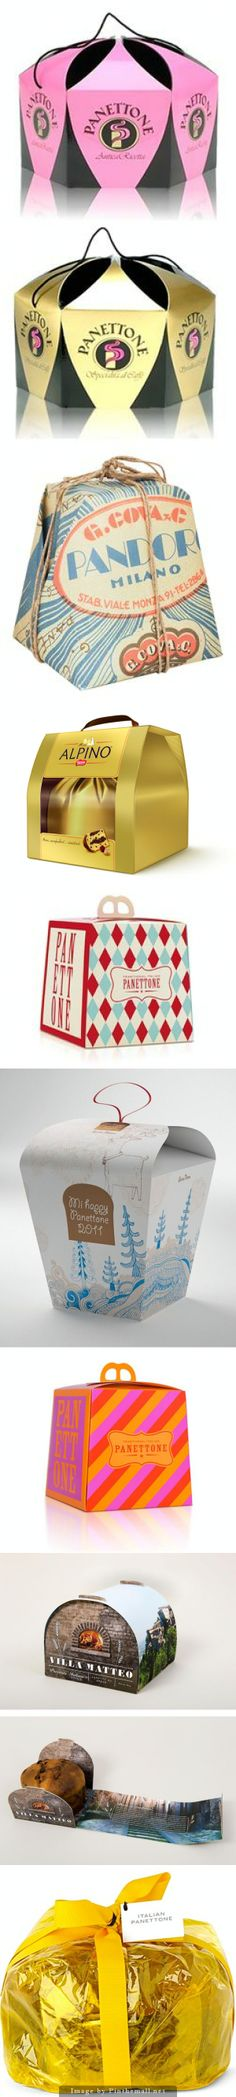 Get inspired by Panettone #packaging curated by Packaging Diva PD - created via http://pinterest.com/packagingdiva